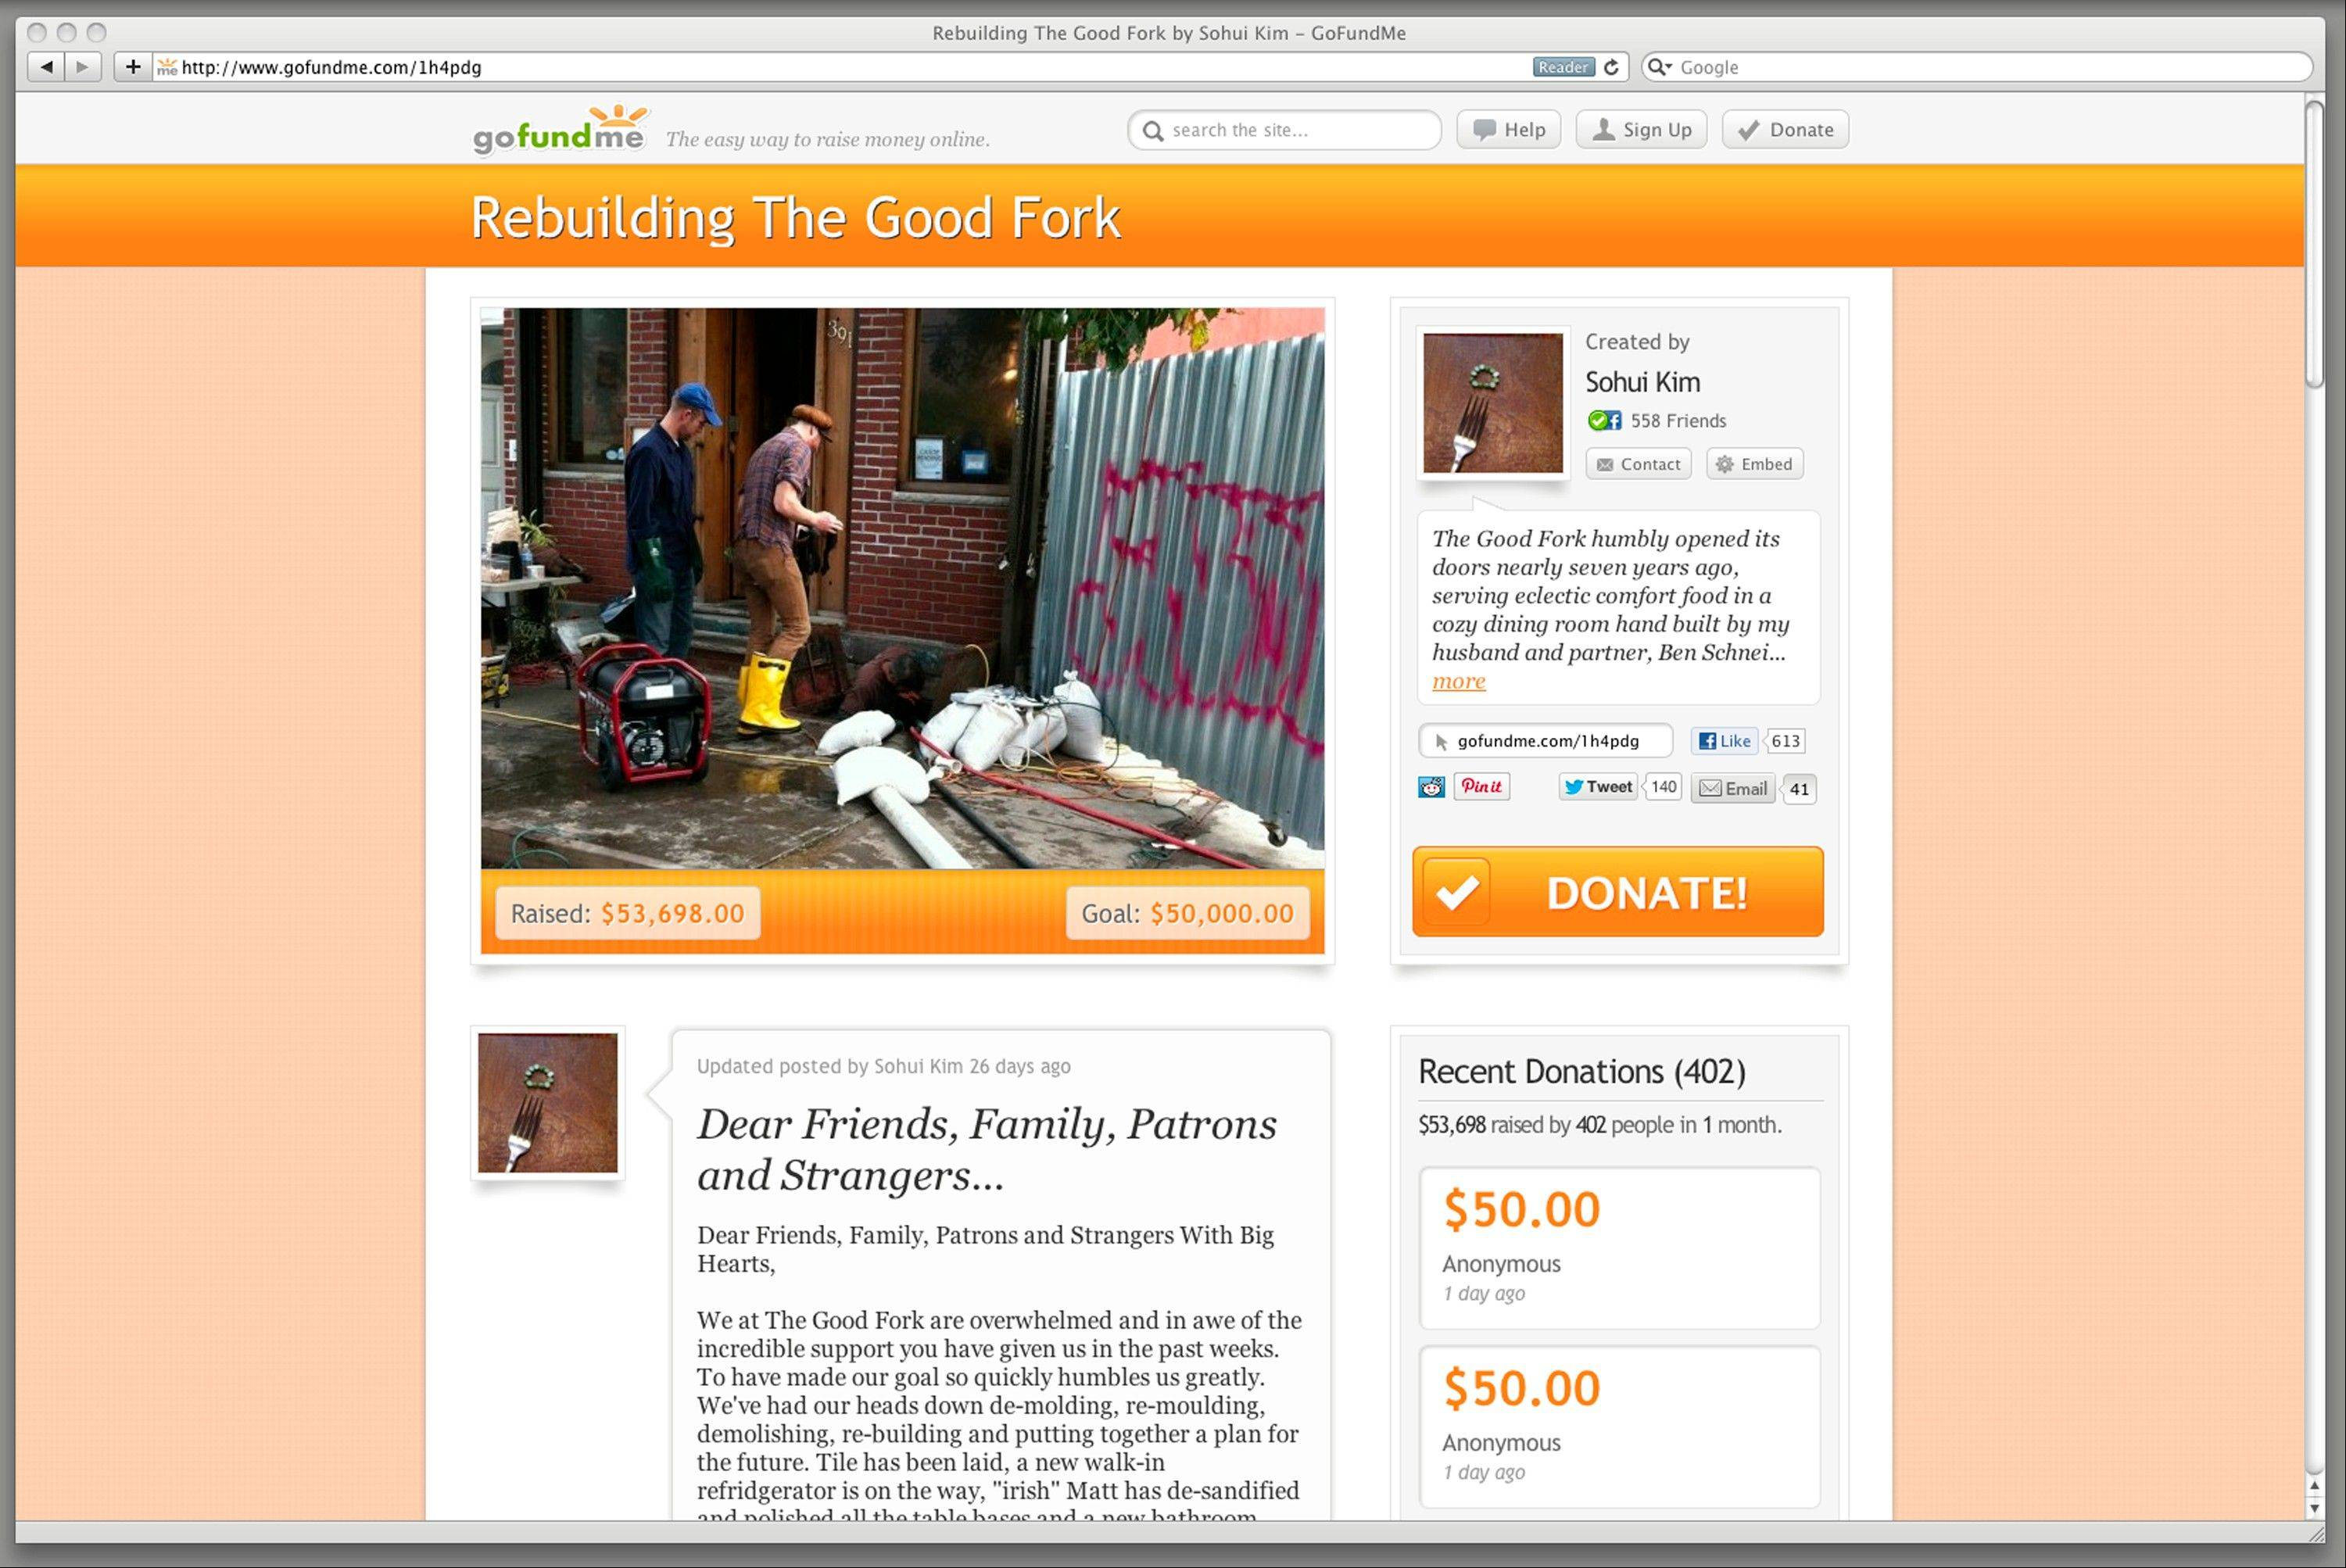 This Dec. 19, 2012 image shows a frame grab of gofundme.com. This web page solicits donations to rebuild a New York restaurant, The Good Fork. In the aftermath of Superstorm Sandy, some who lost their homes or businesses have turned to crowd-funding websites.